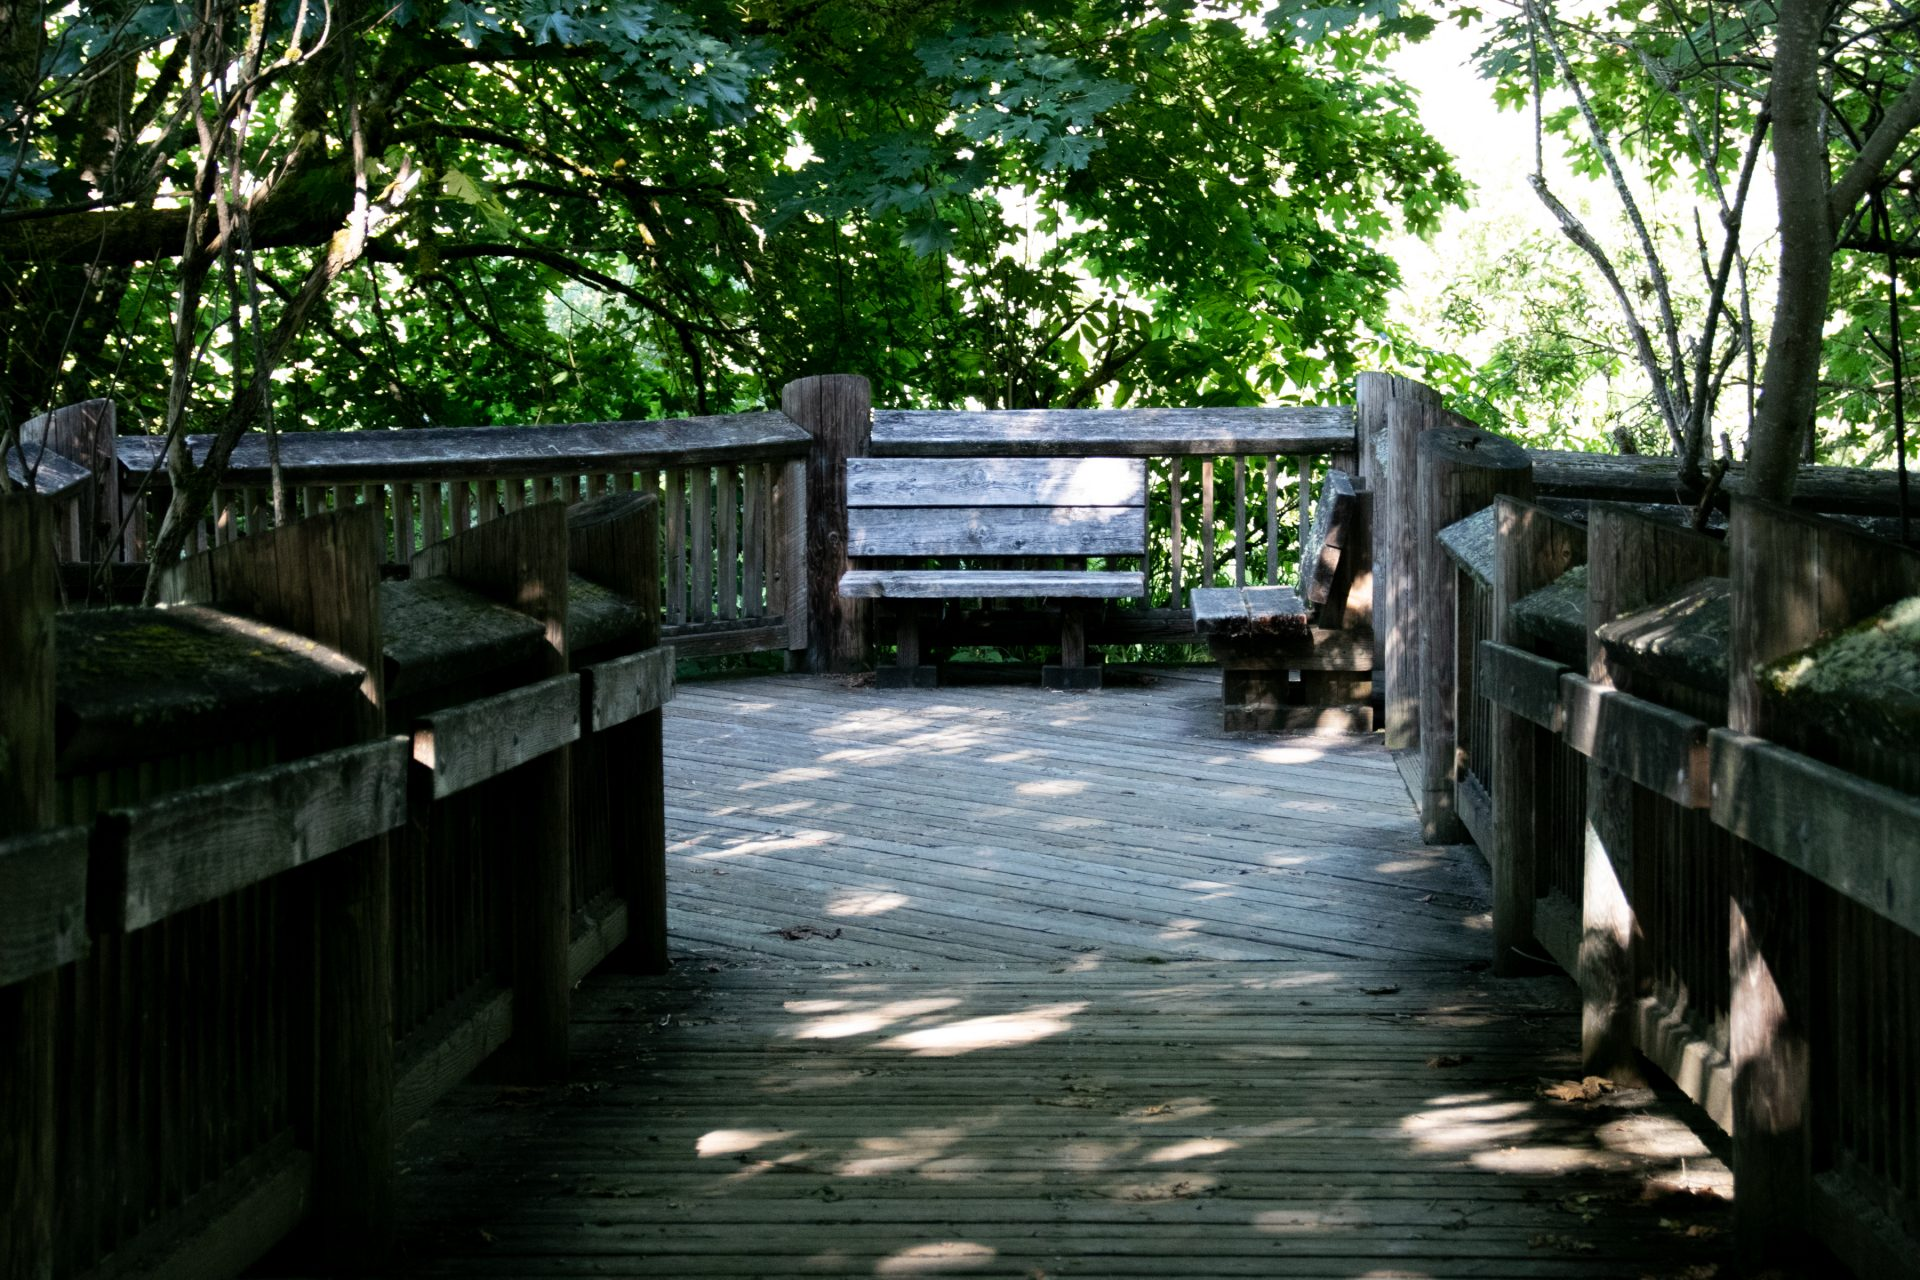 Wooden Benches On Boardwalk Under Trees